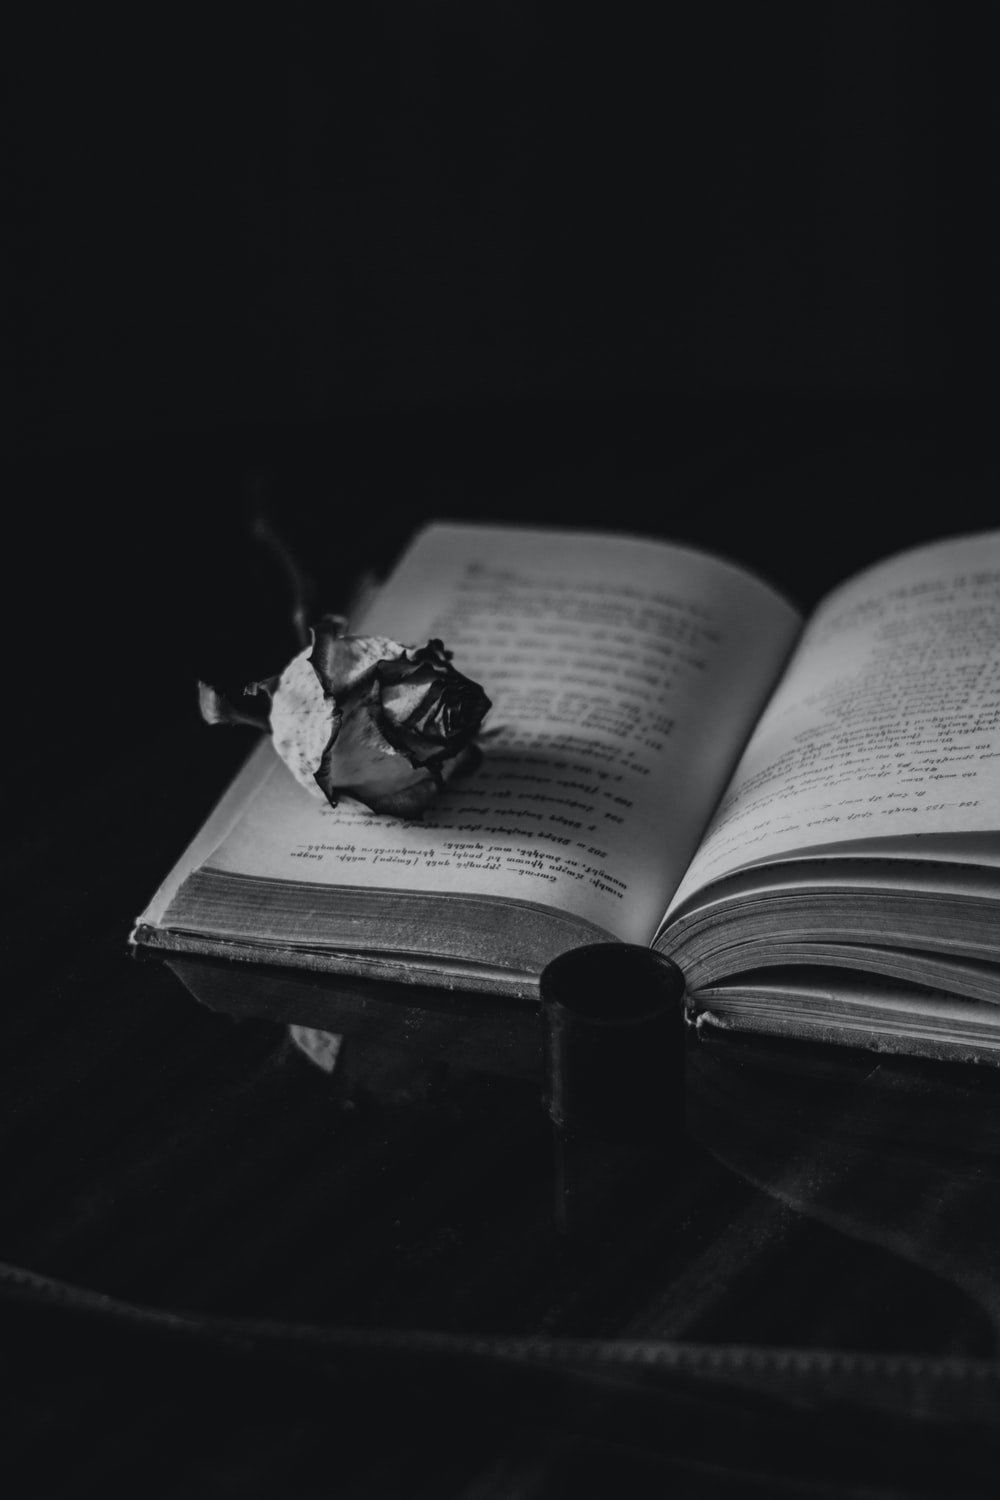 grayscale photo of opened book